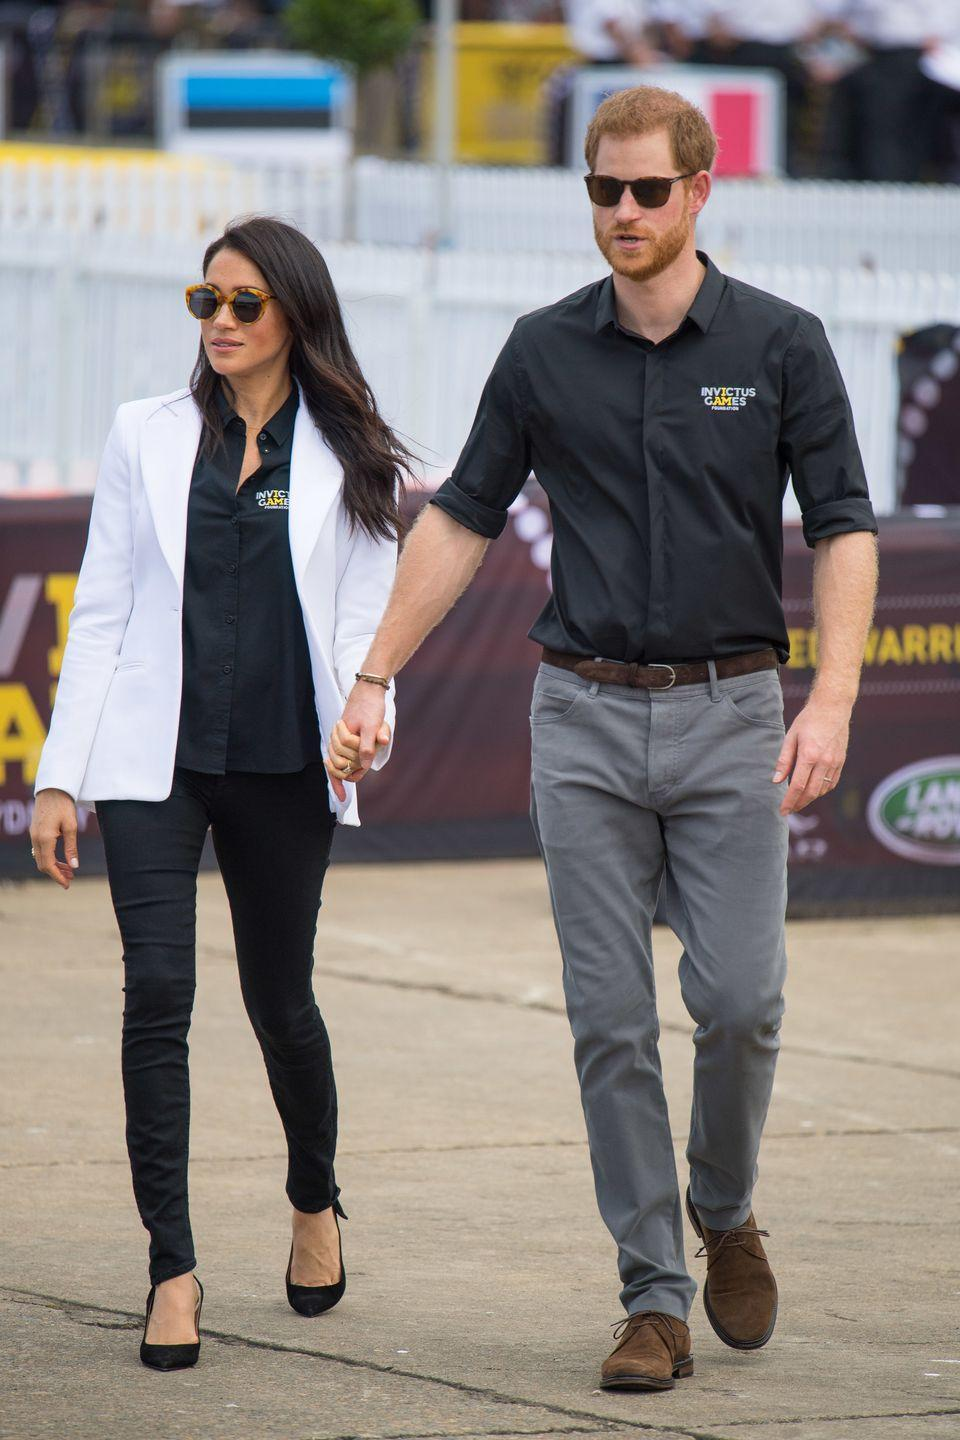 "<p>The Duke and Duchess wore matching Invictus Games shirts at the Jaguar Land Rover Driving Challenge. Meghan paired hers with an Altuzarra blazer, skinny jeans by MOTHER Denim, Tabitha Simmons pumps, and a fun pair of sunglasses by Illesteva. </p><p><a class=""link rapid-noclick-resp"" href=""https://go.redirectingat.com?id=74968X1596630&url=https%3A%2F%2Fwww.shopbop.com%2Flooker-skinny-jeans-mother%2Fvp%2Fv%3D1%2F1534840640.htm&sref=https%3A%2F%2Fwww.townandcountrymag.com%2Fstyle%2Ffashion-trends%2Fg3272%2Fmeghan-markle-preppy-style%2F"" rel=""nofollow noopener"" target=""_blank"" data-ylk=""slk:SHOP NOW"">SHOP NOW</a> <em>Skinny Jeans by MOTHER Denim, $196</em></p><p><a class=""link rapid-noclick-resp"" href=""https://go.redirectingat.com?id=74968X1596630&url=https%3A%2F%2Fillesteva.com%2Fproducts%2Fpalm-beach-sunglasses-amber%3Fgclid%3DCj0KCQjw6rXeBRD3ARIsAD9ni9A1dFJxYo0yF6aUIzzgea1fyKLDLe6qcpjO6kWBPbeserXmeunnV3QaApUdEALw_wcB&sref=https%3A%2F%2Fwww.townandcountrymag.com%2Fstyle%2Ffashion-trends%2Fg3272%2Fmeghan-markle-preppy-style%2F"" rel=""nofollow noopener"" target=""_blank"" data-ylk=""slk:SHOP NOW"">SHOP NOW</a> <em>Illesteva Palm Beach Sunglasses, $240</em></p>"